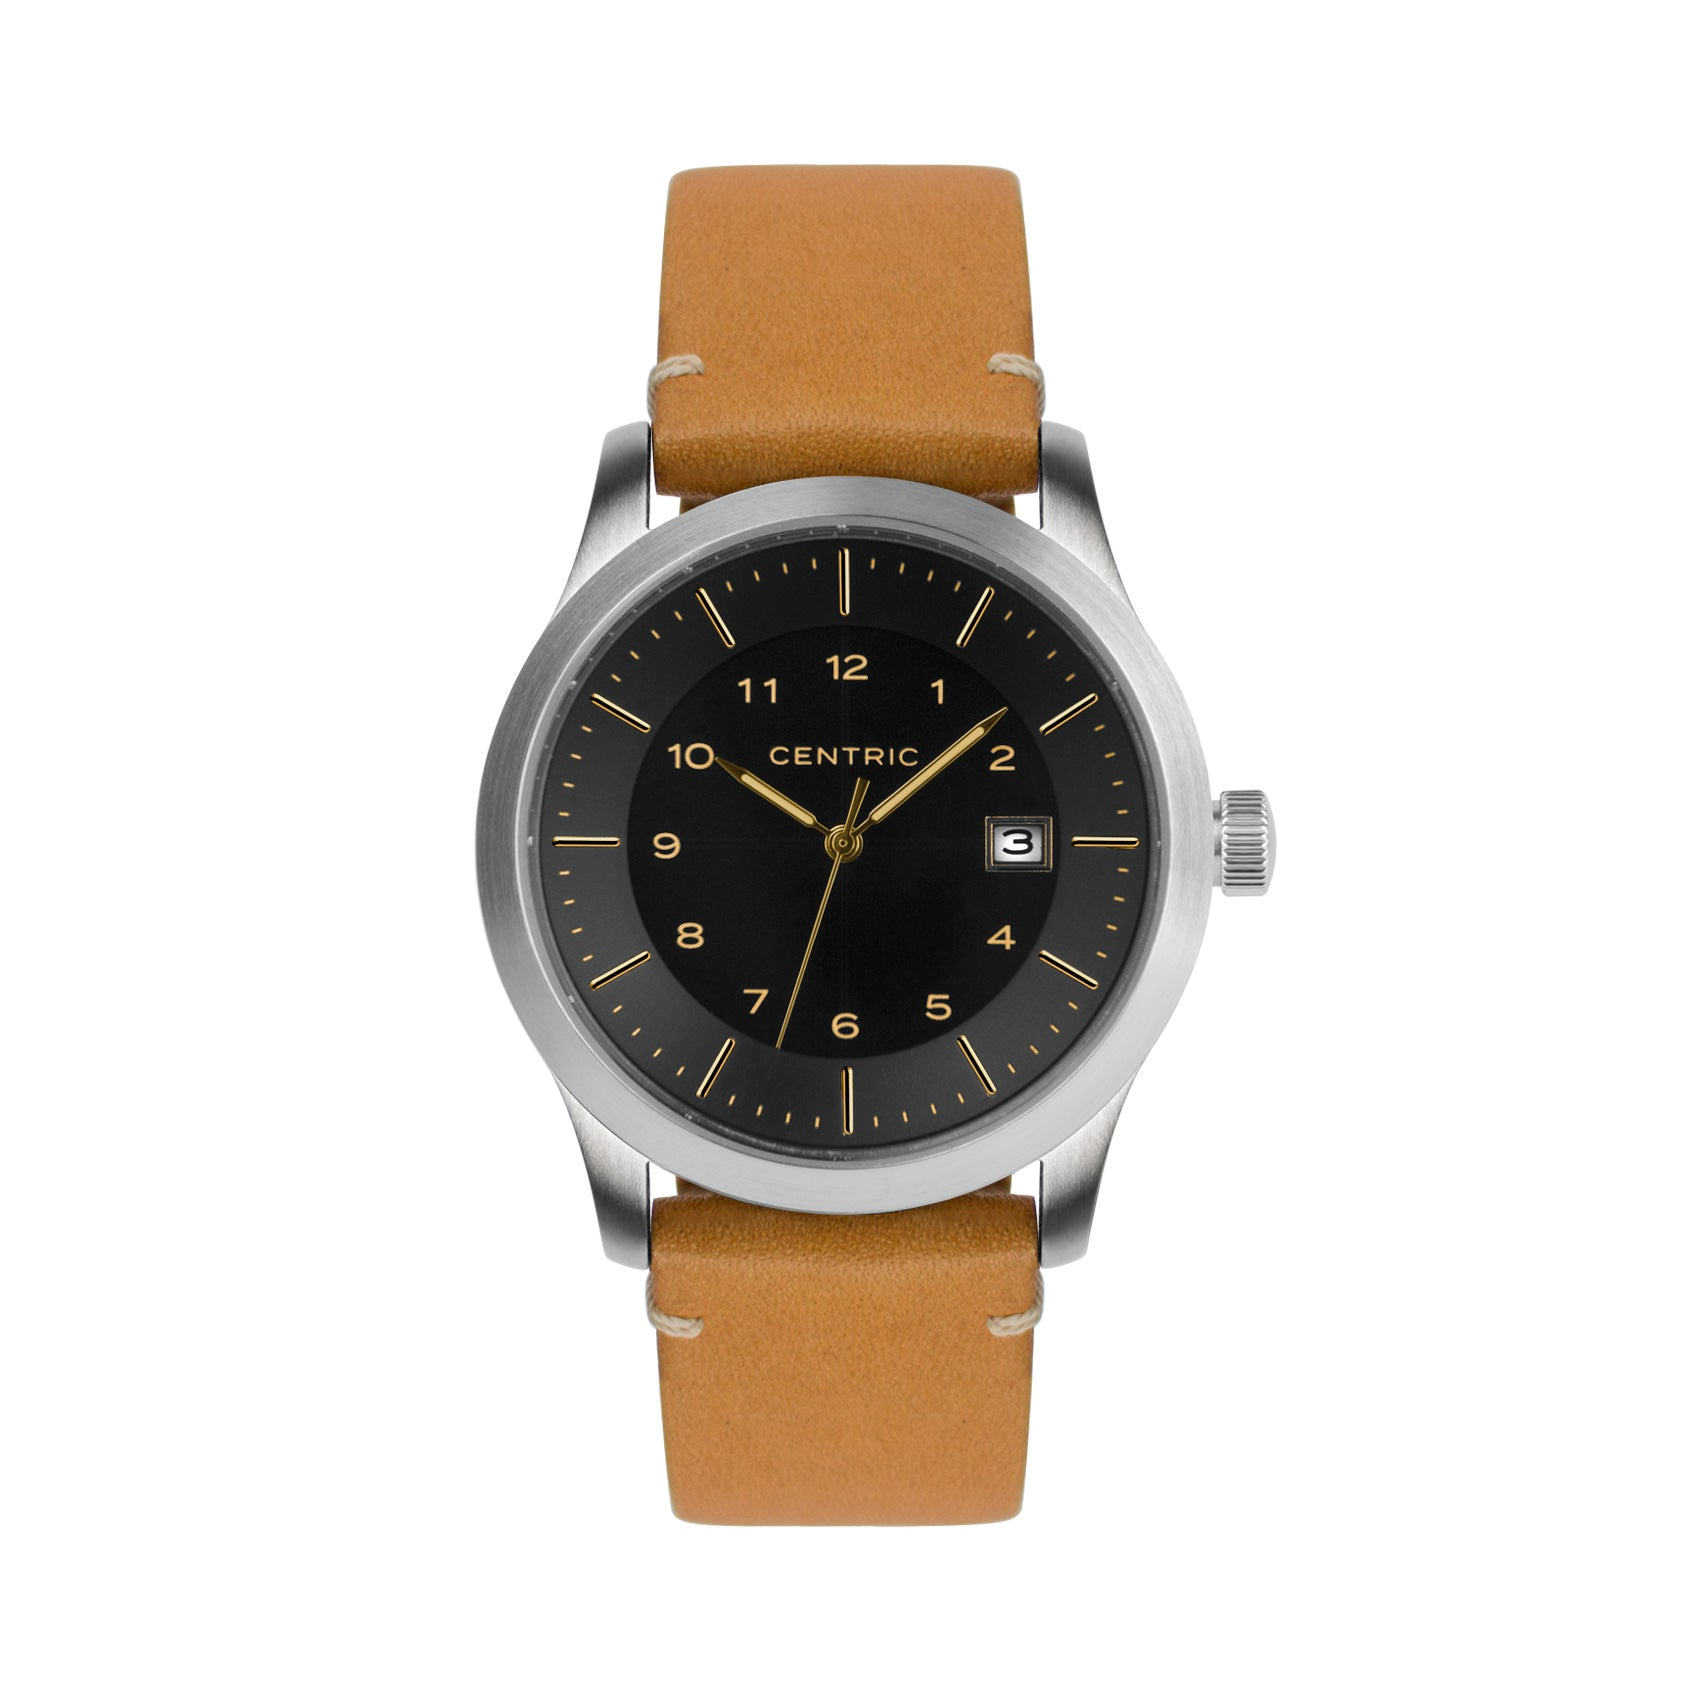 Field Watch Mark I (Gilt) - Modern Leather Strap